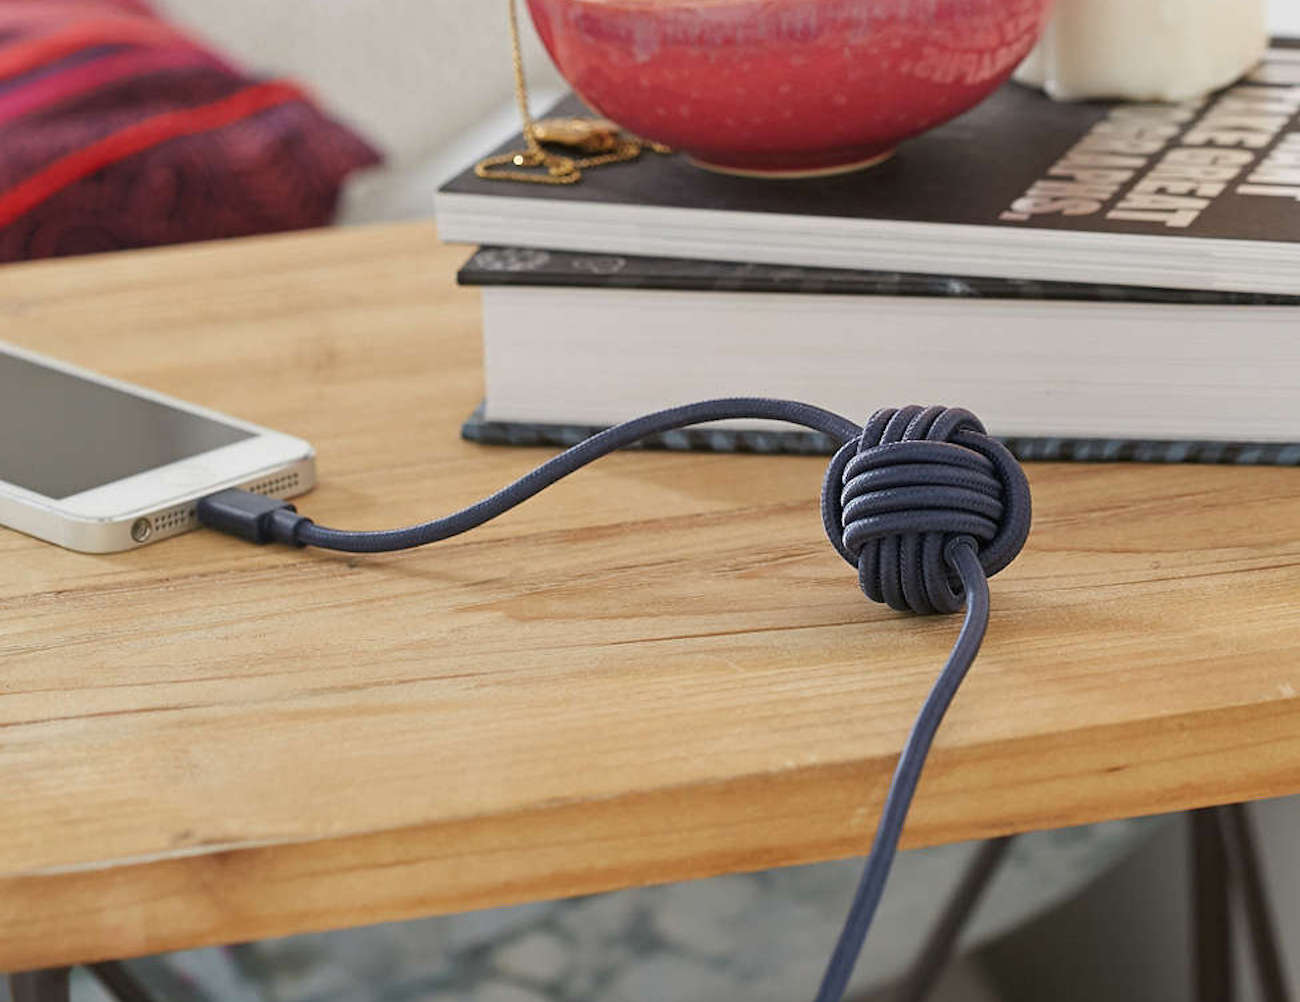 NIGHT Cable by Native Union